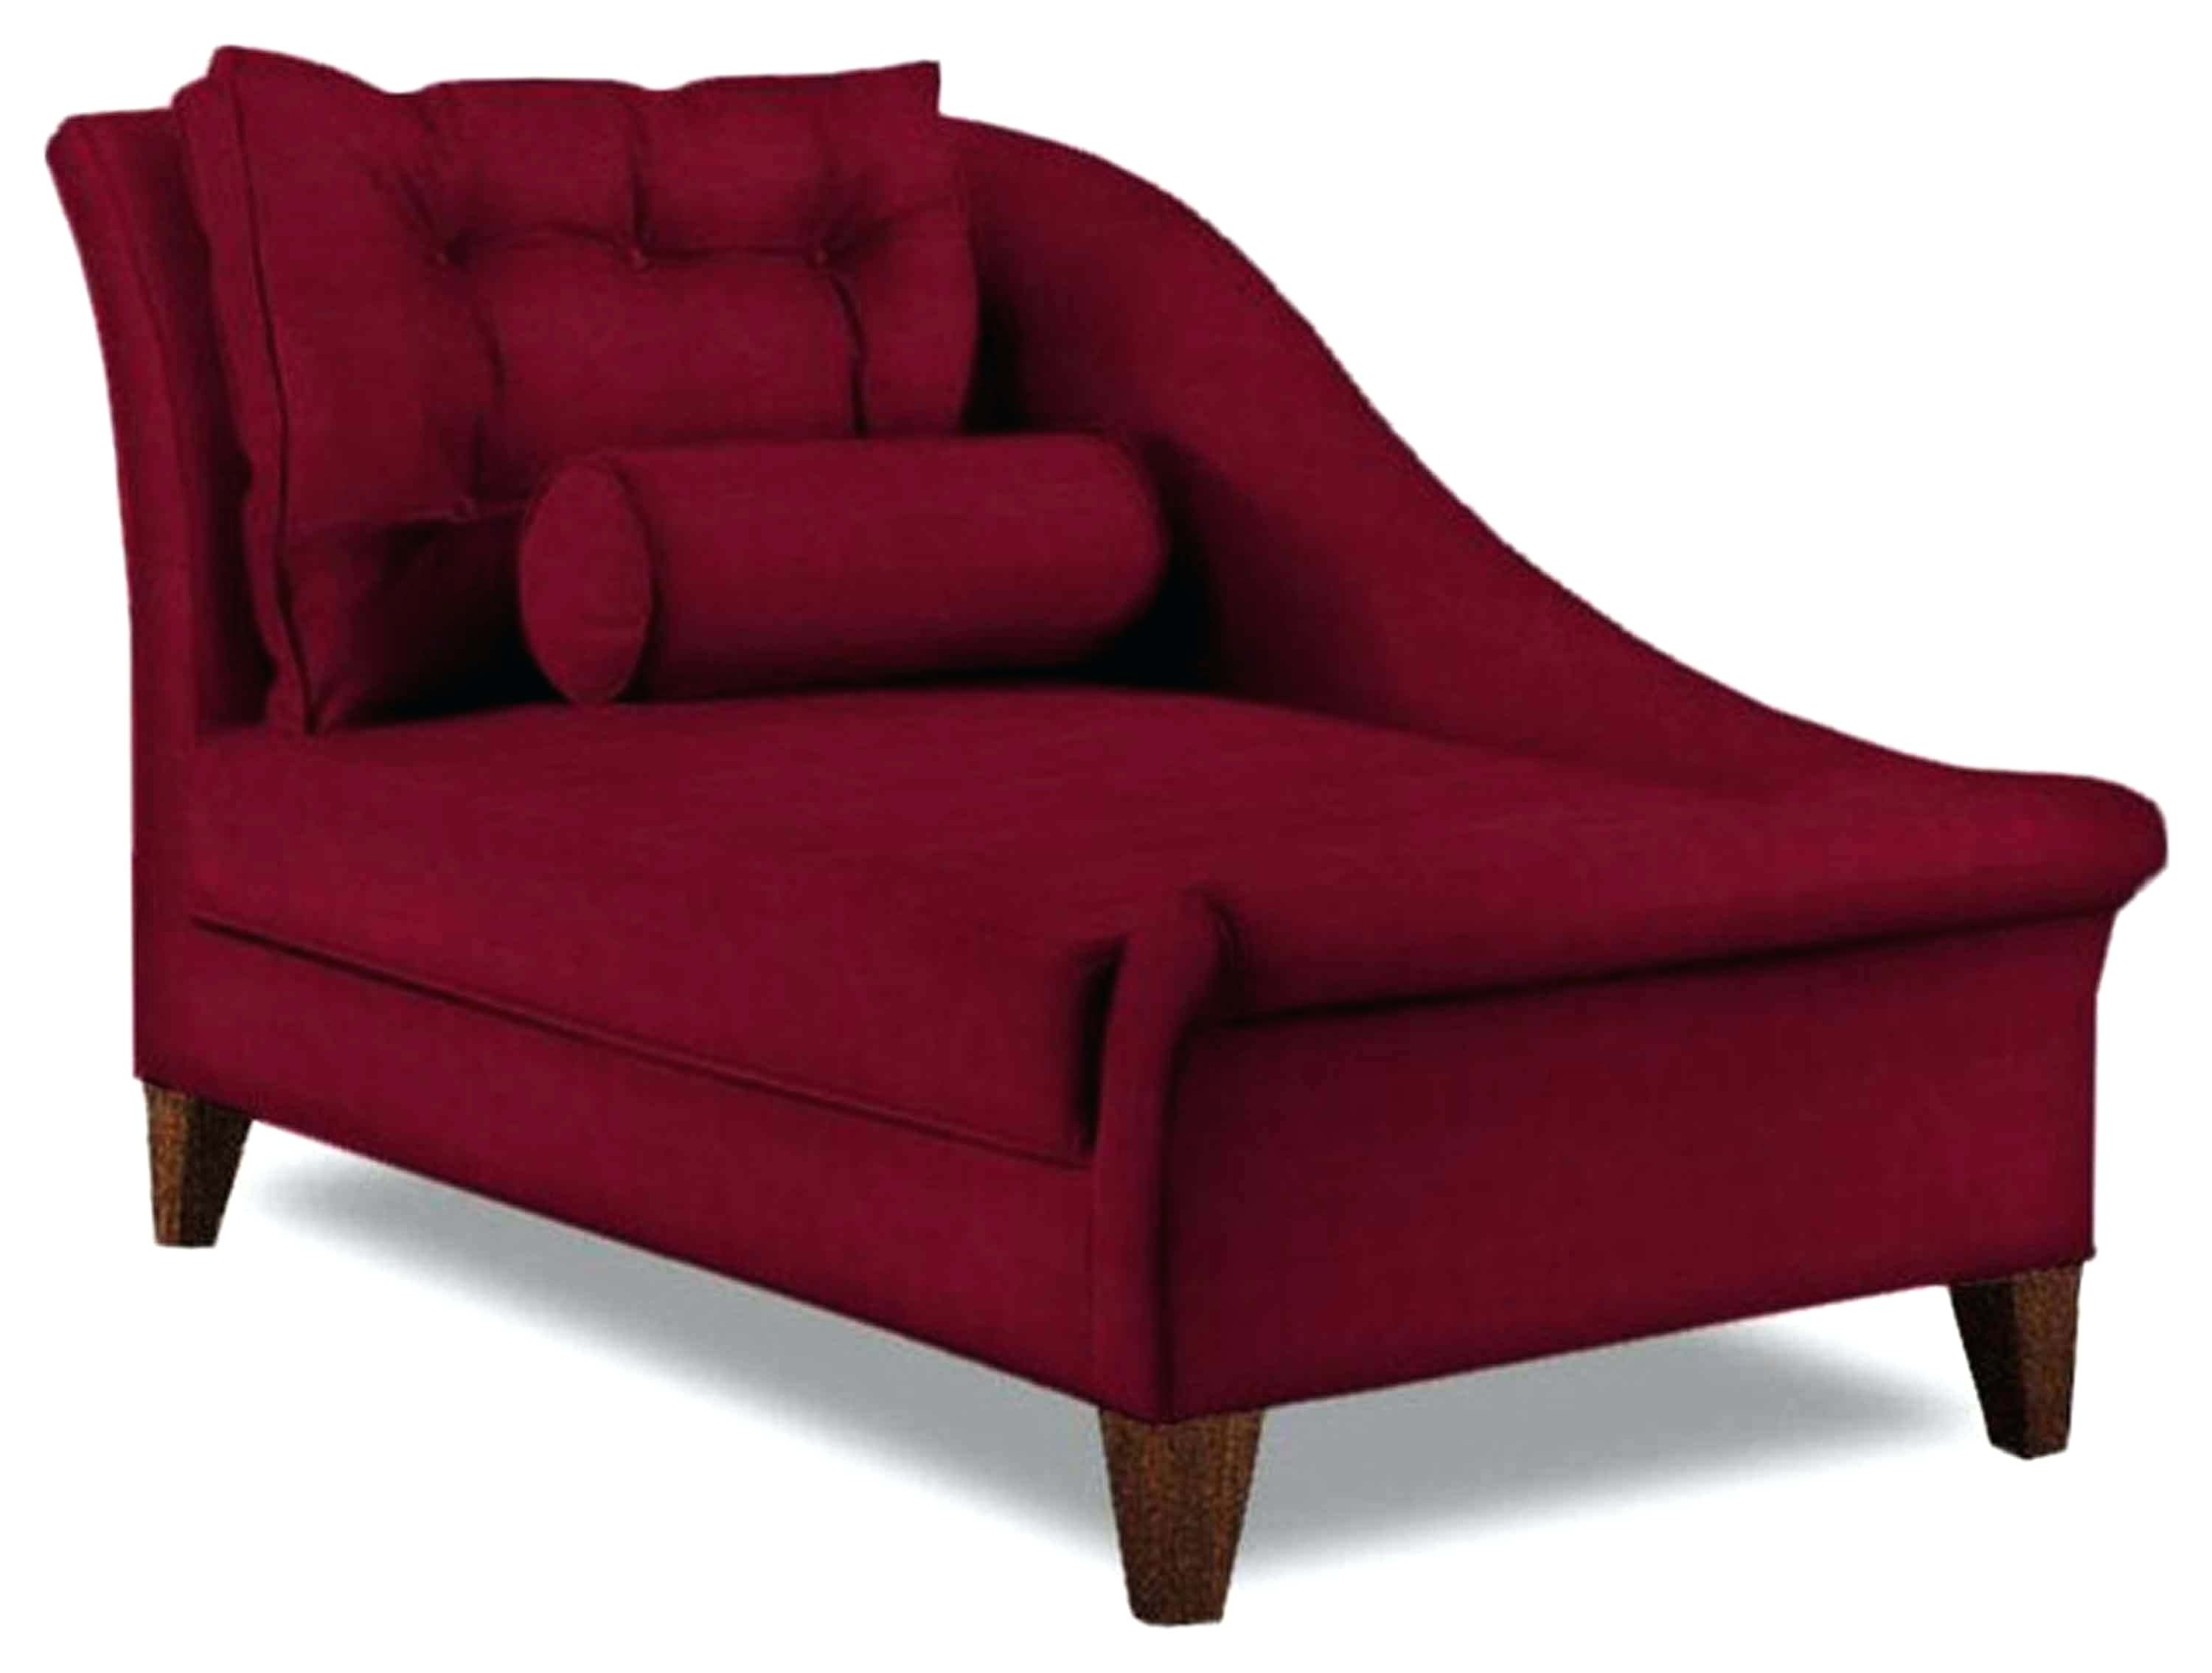 2018 Chaise Lounge Chair Slipcovers Chaise Lounge Chair With Arms In Chaise Lounge Chairs With Arms Slipcover (View 5 of 15)